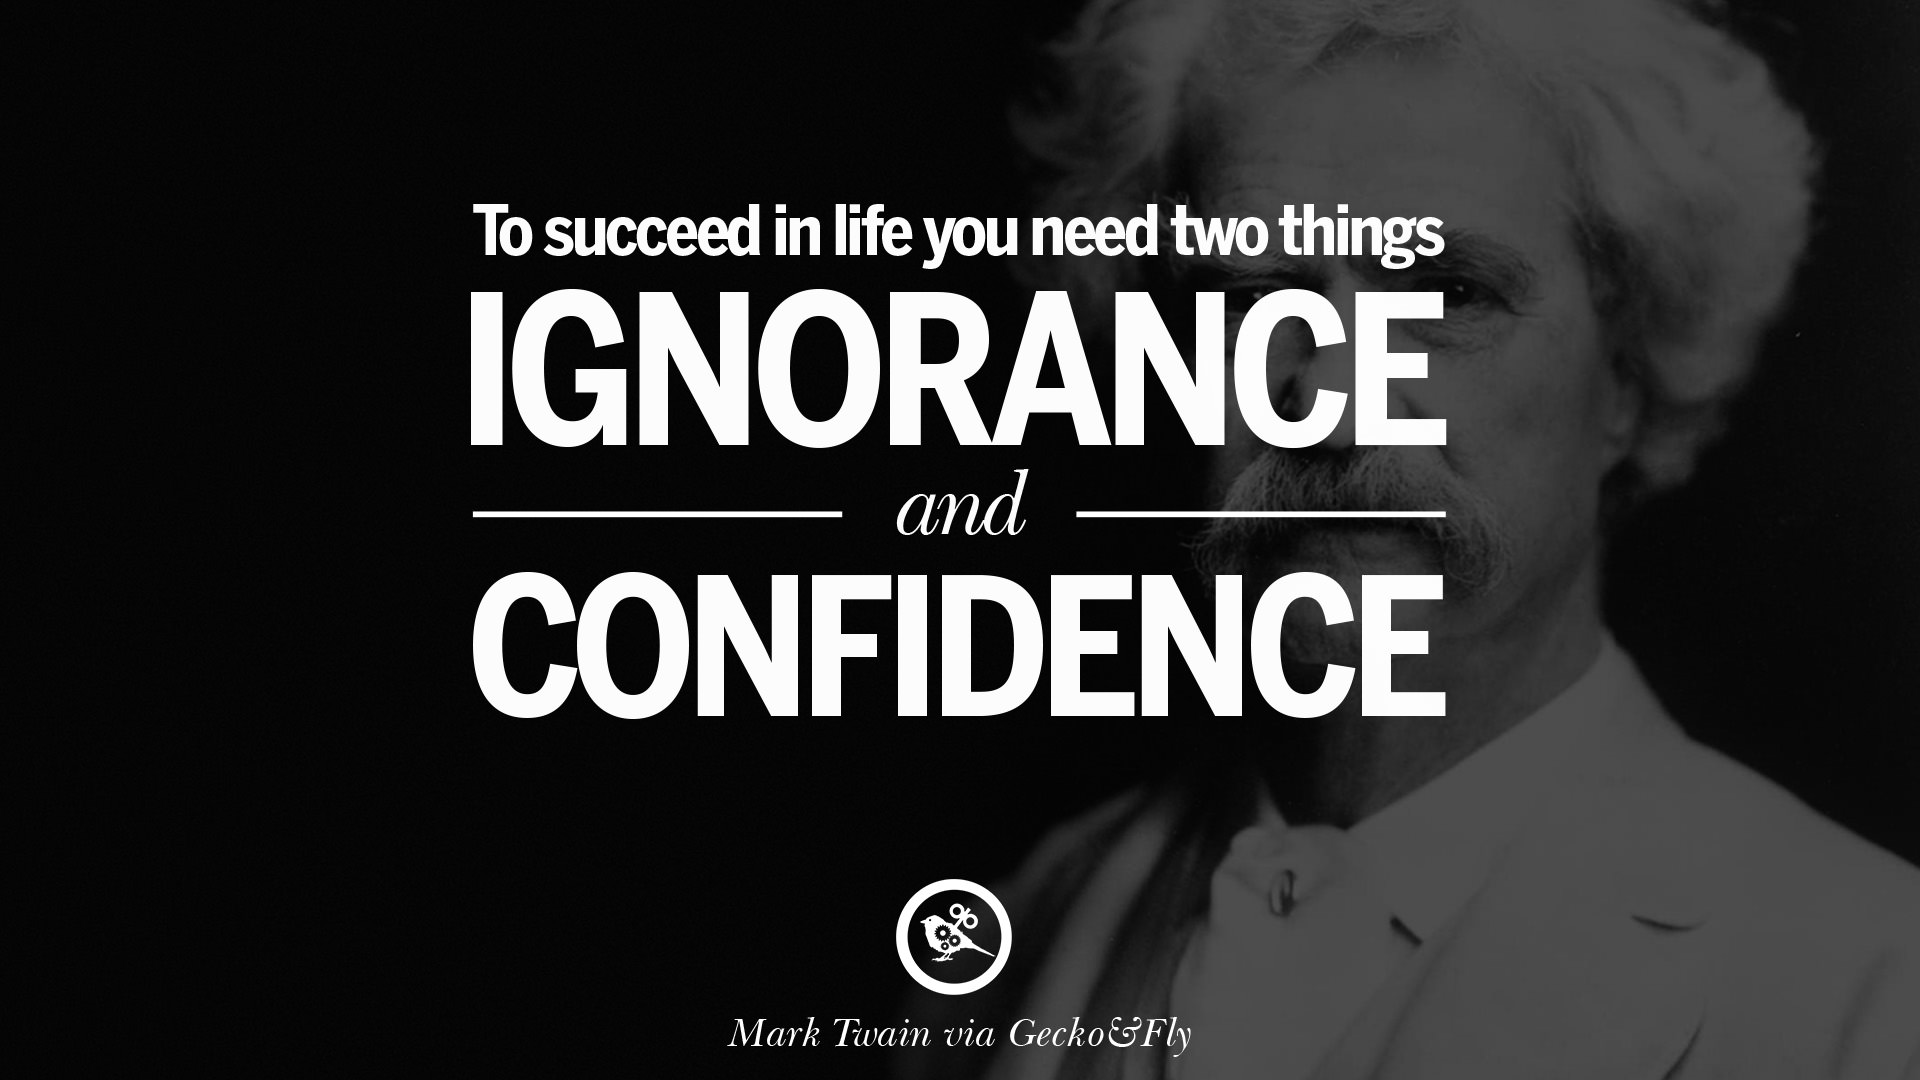 Wise Life Quotes 18 Wise Quotesmark Twain On Wisdom Human Nature Life And